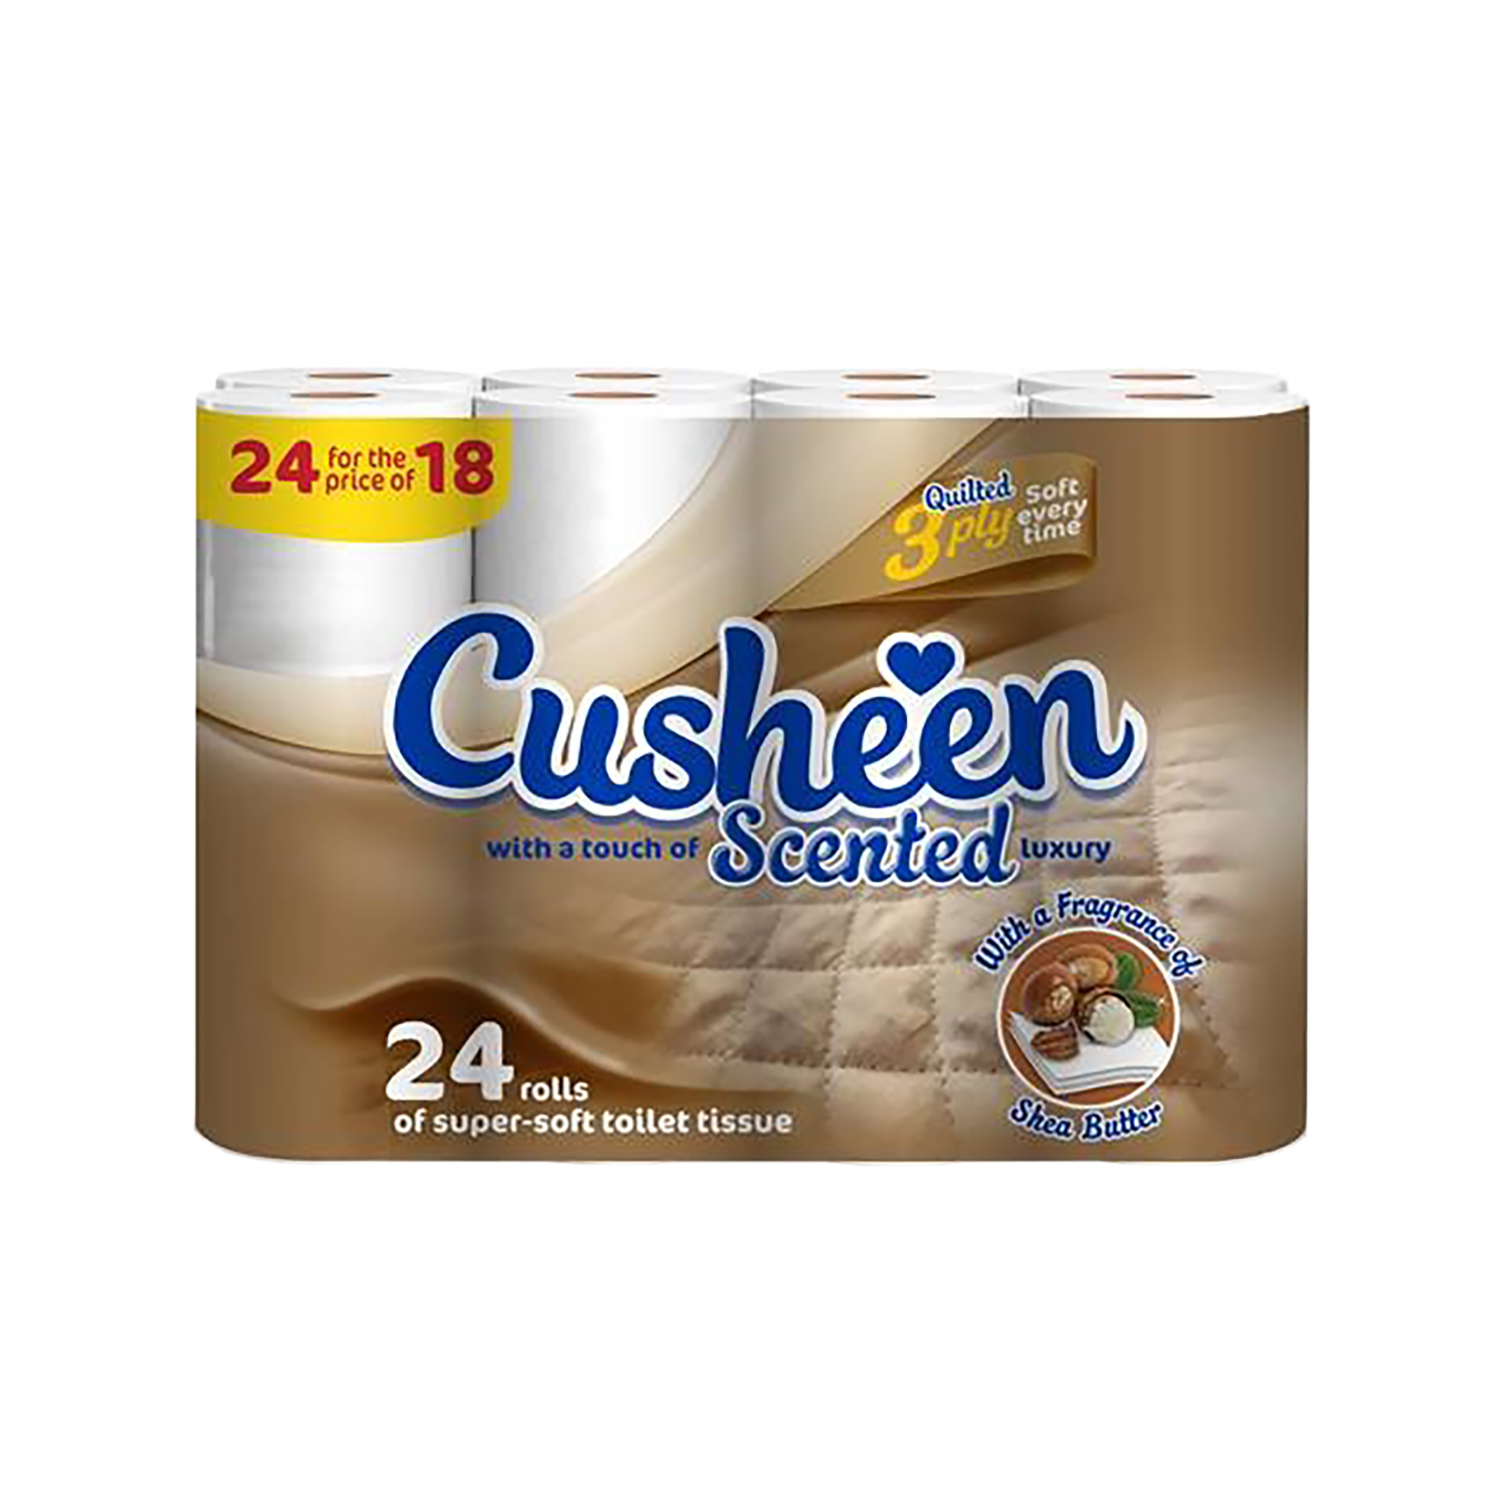 Cusheen Scented Luxury Super Soft Toilet Rolls 3-Ply White Ref 1102030 Pack 24